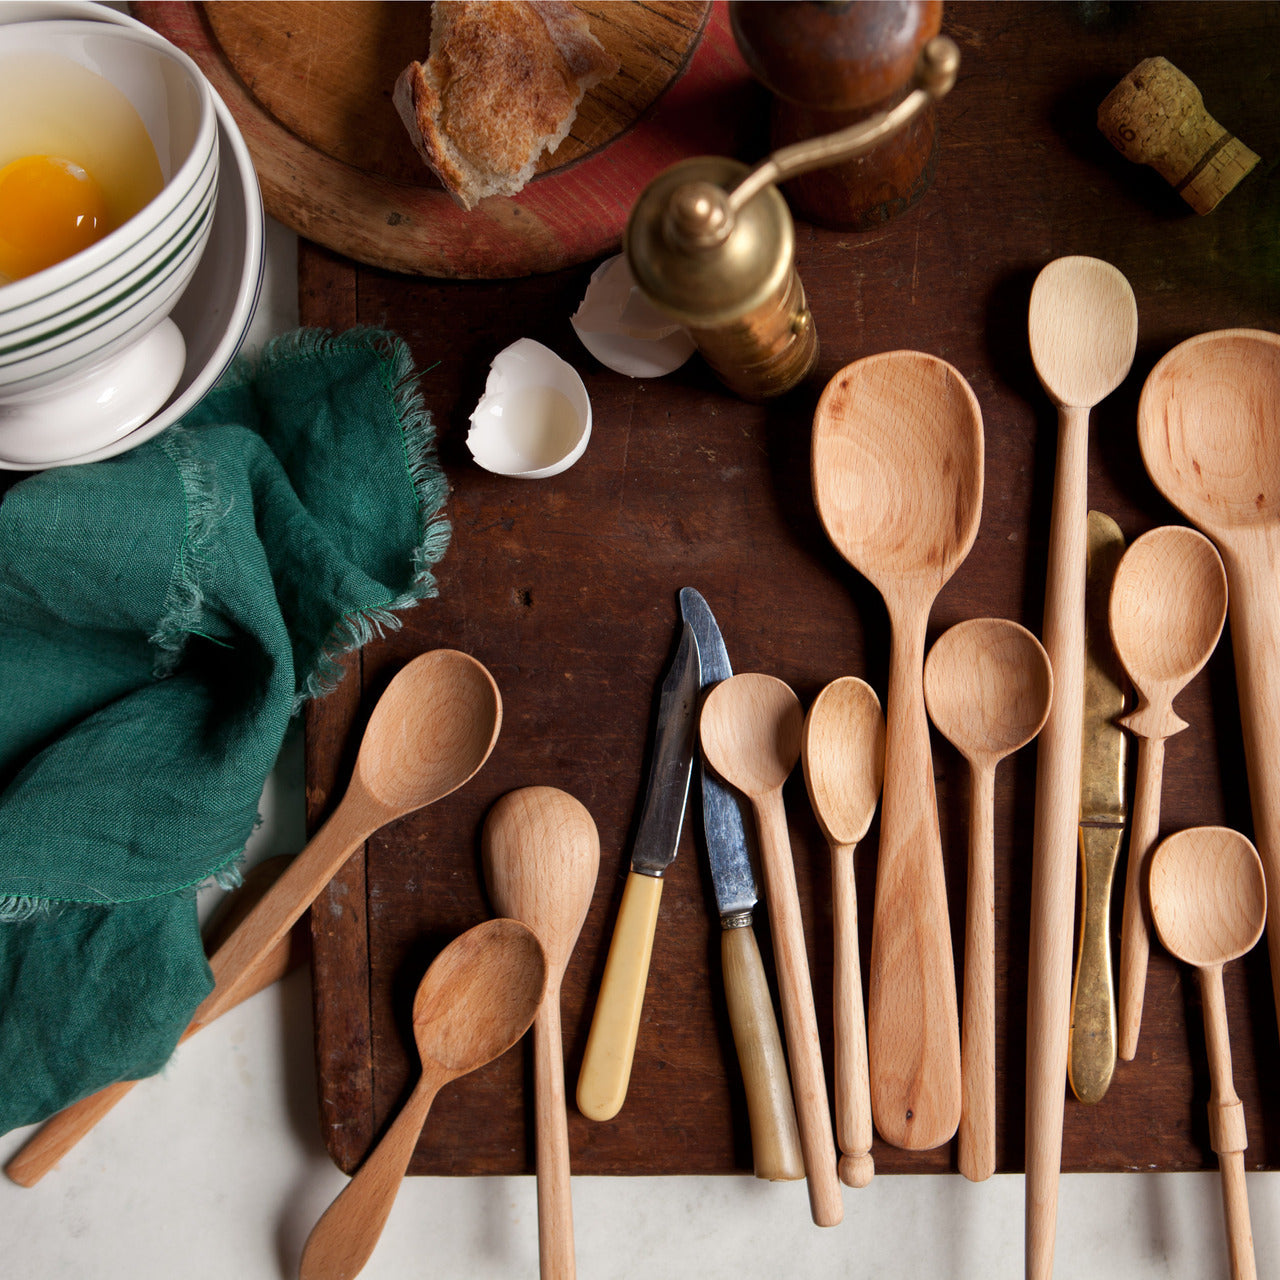 Bakers Dozen Wood Spoons, Lg - Blackbird General Store